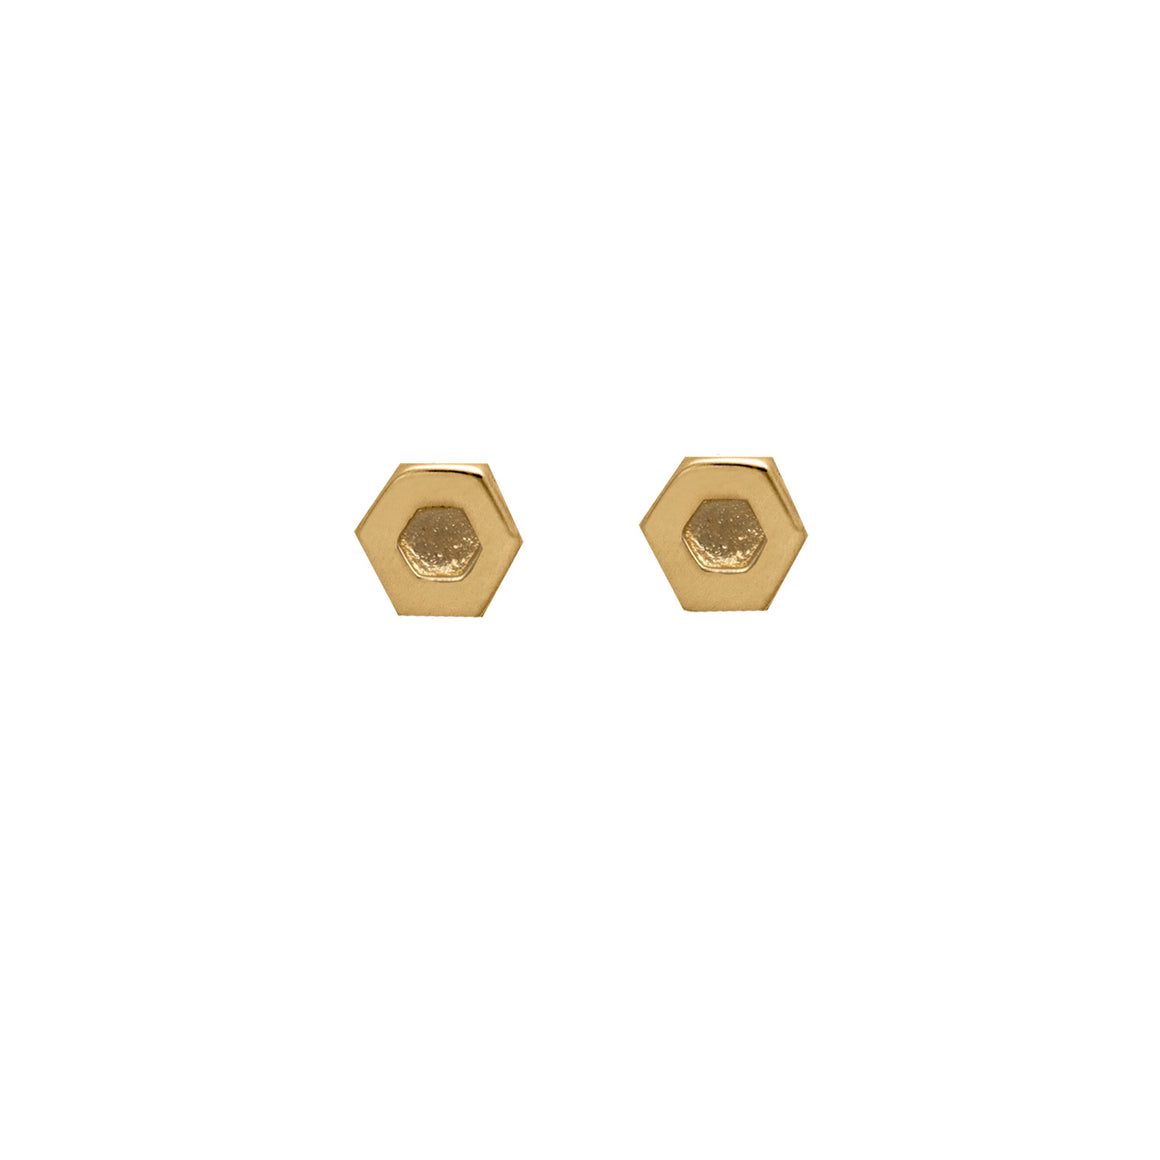 Edge Only Hexagon Earrings in 14 carat Gold EOxLH